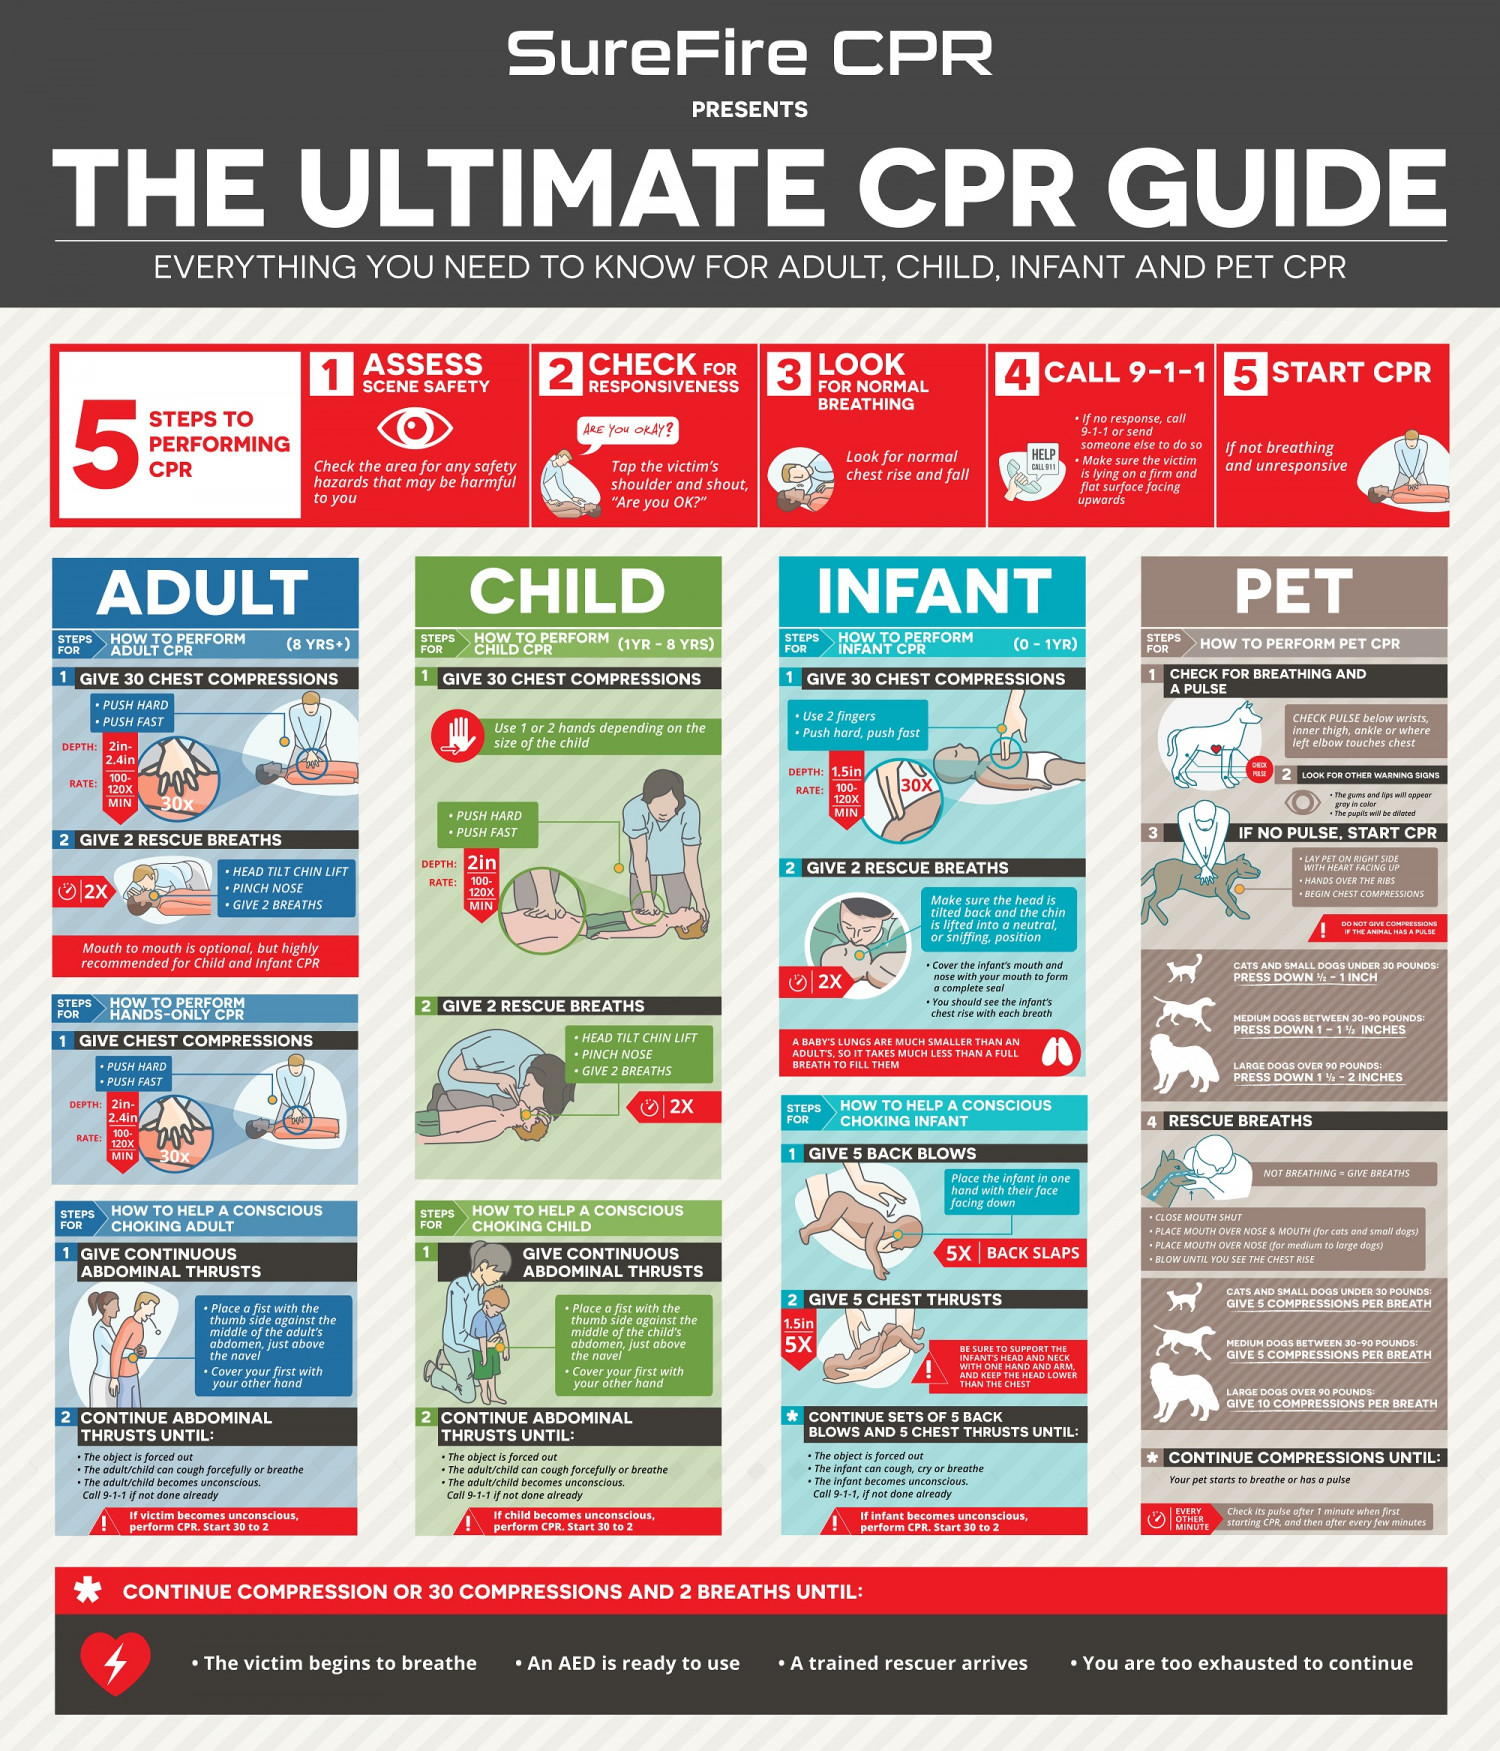 THE ULTIMATE CPR GUIDE Infographic